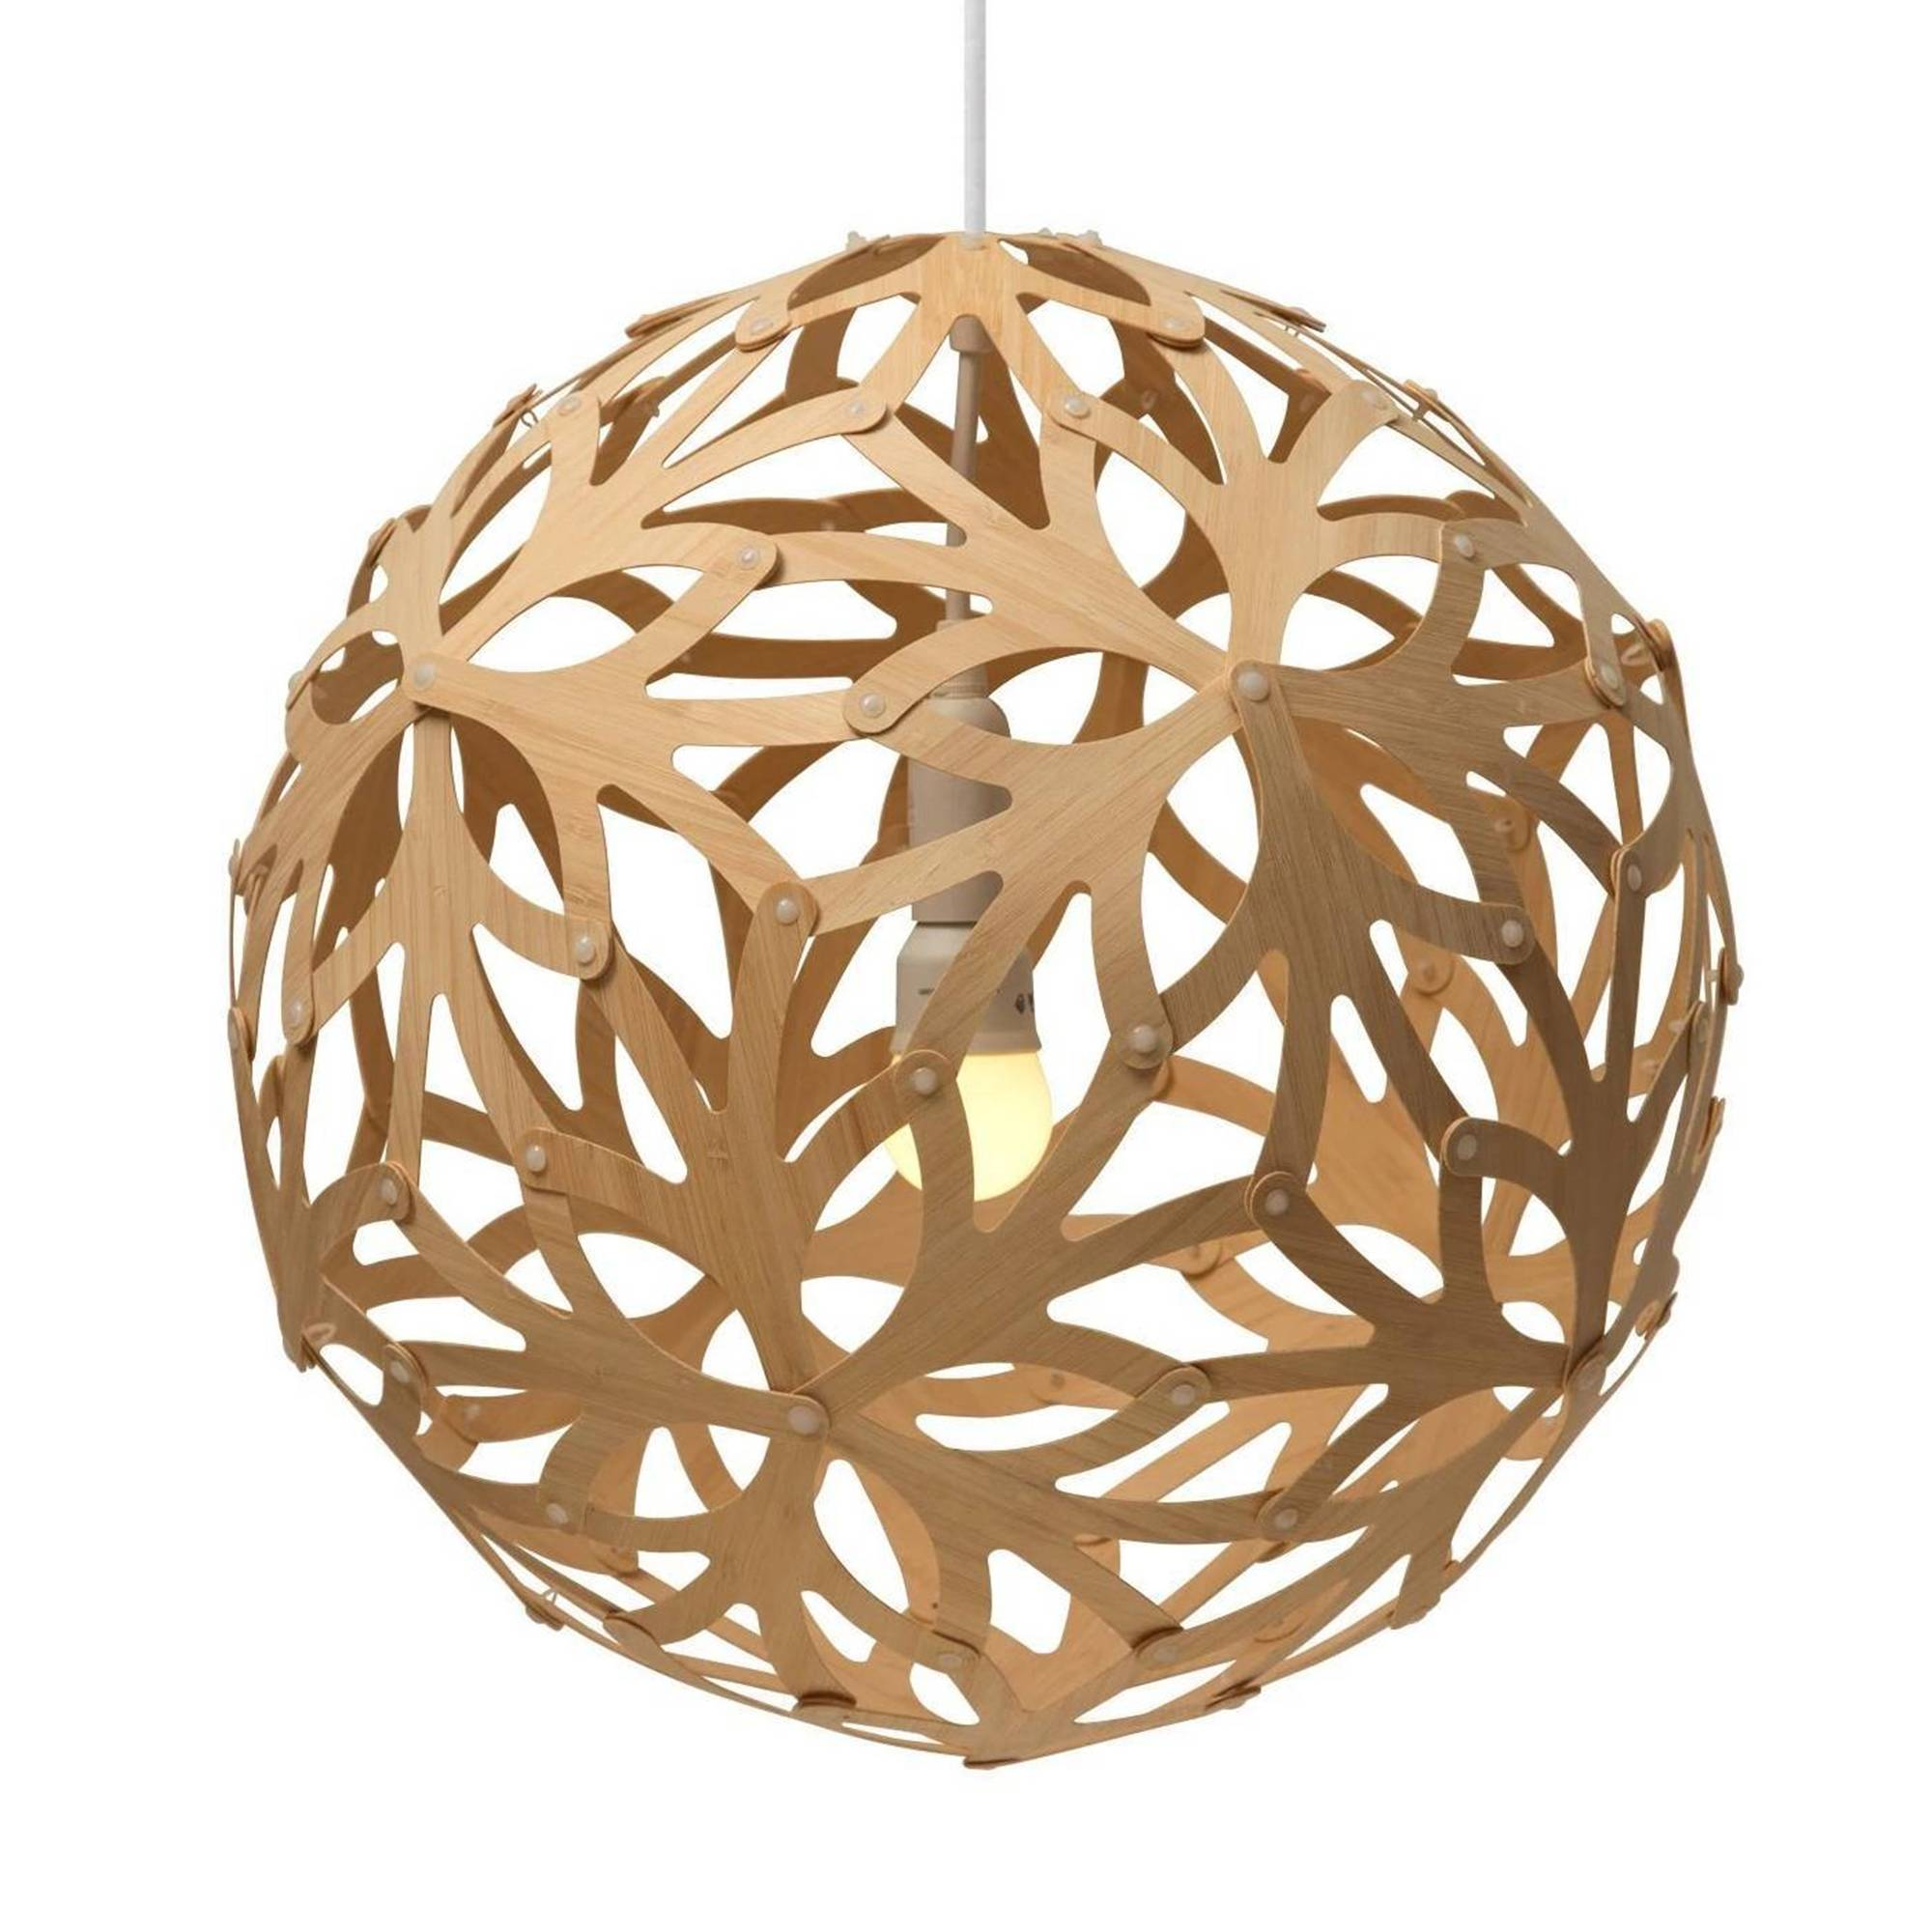 Floral Pendant Light: 1200 + Natural